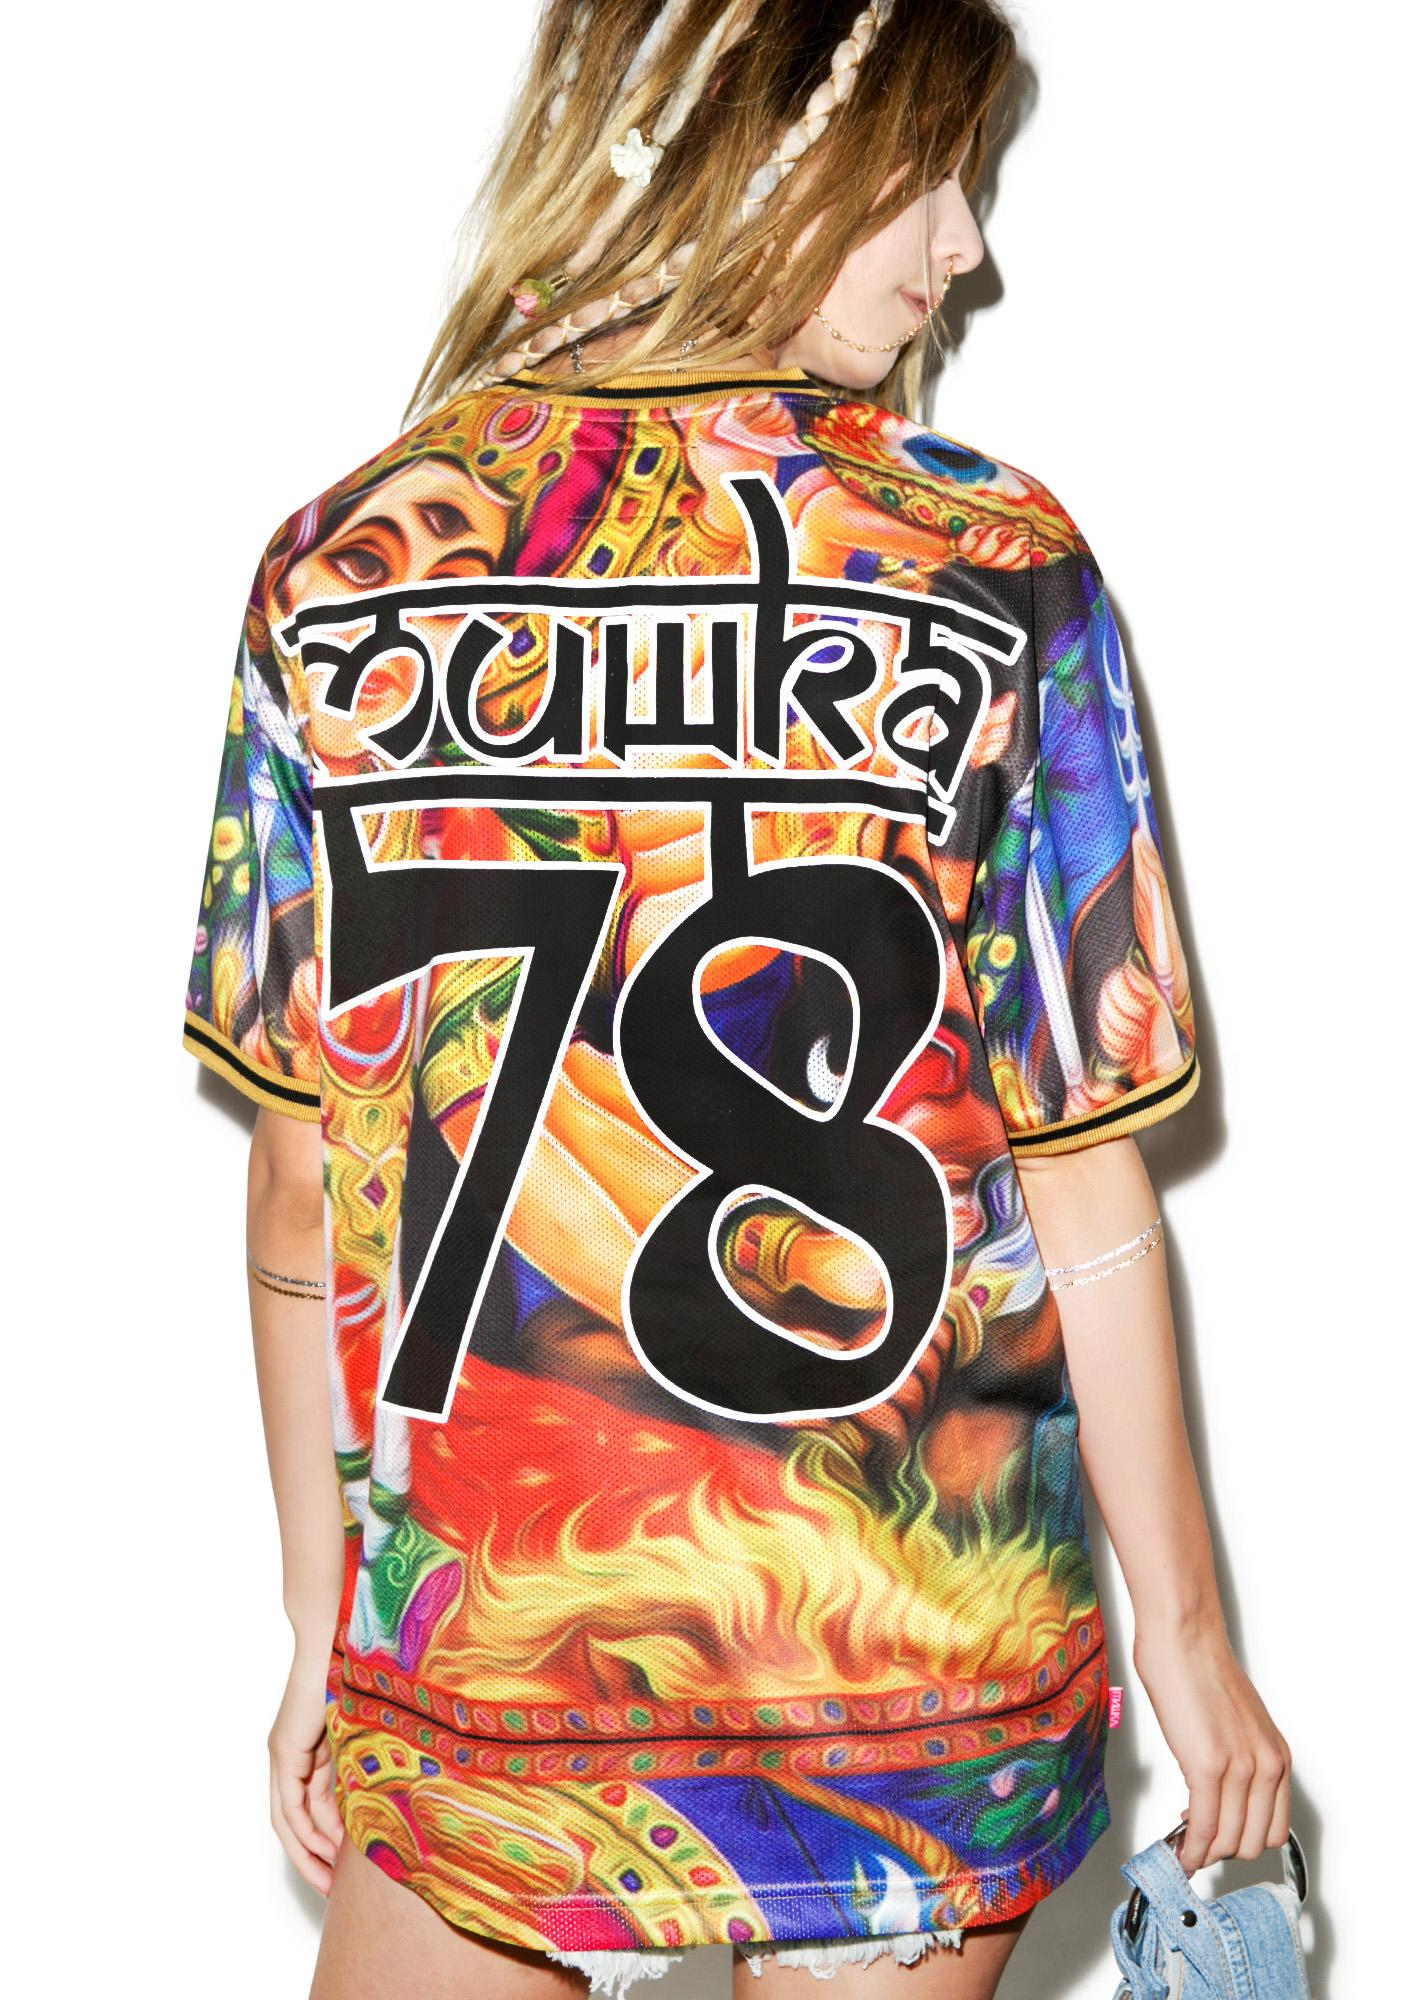 Mishka The Offering Football Jersey